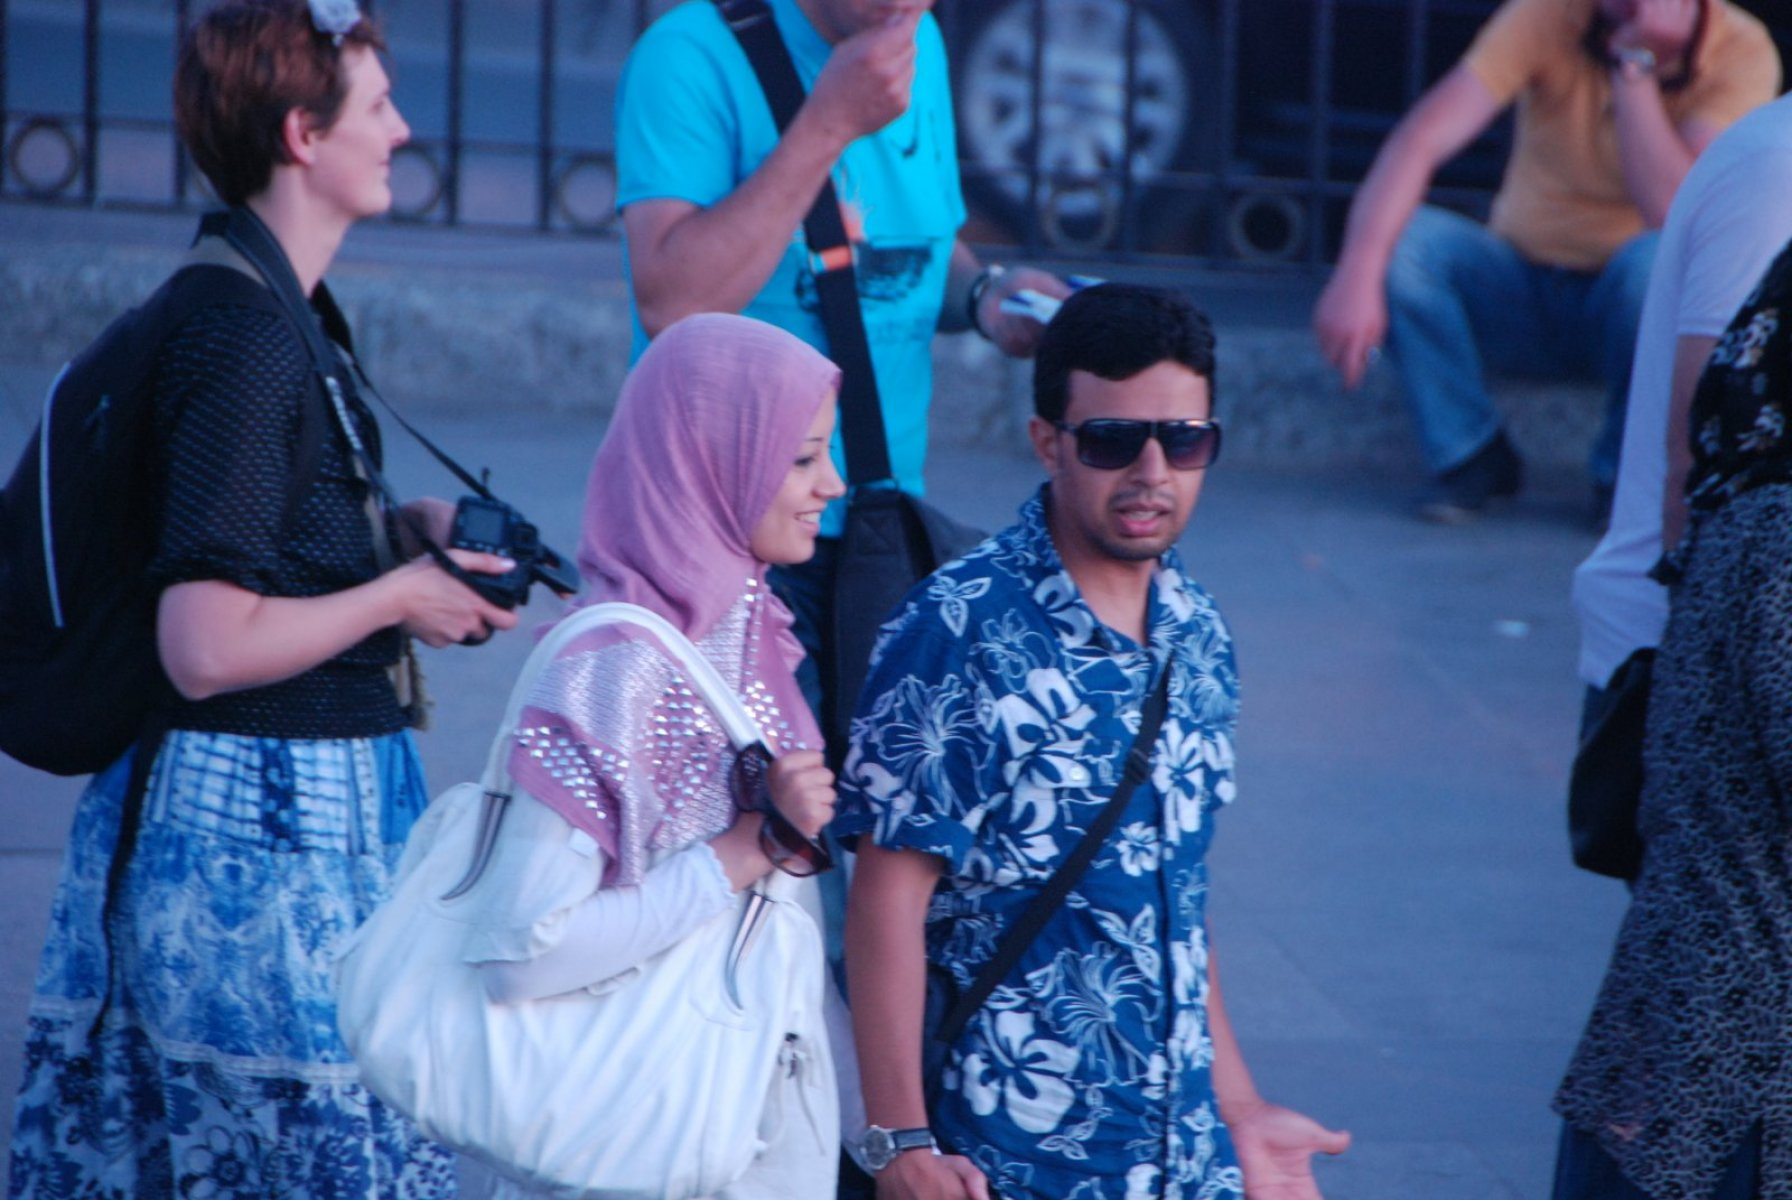 Foreign tourists